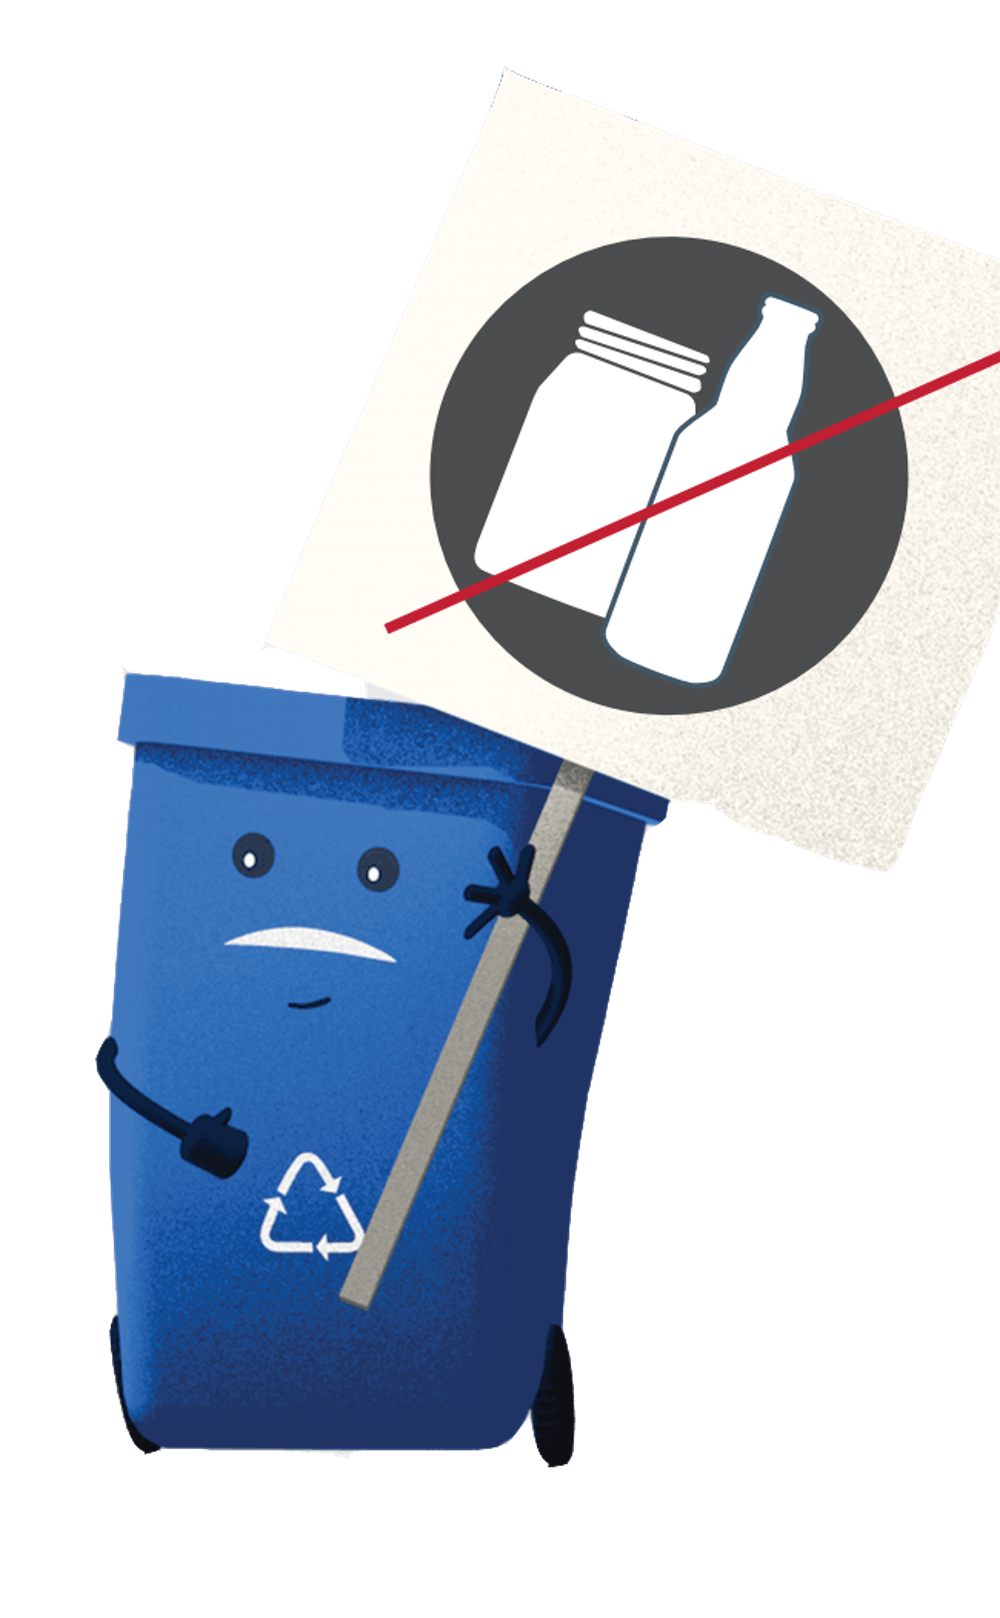 City examines residents' recycling bins